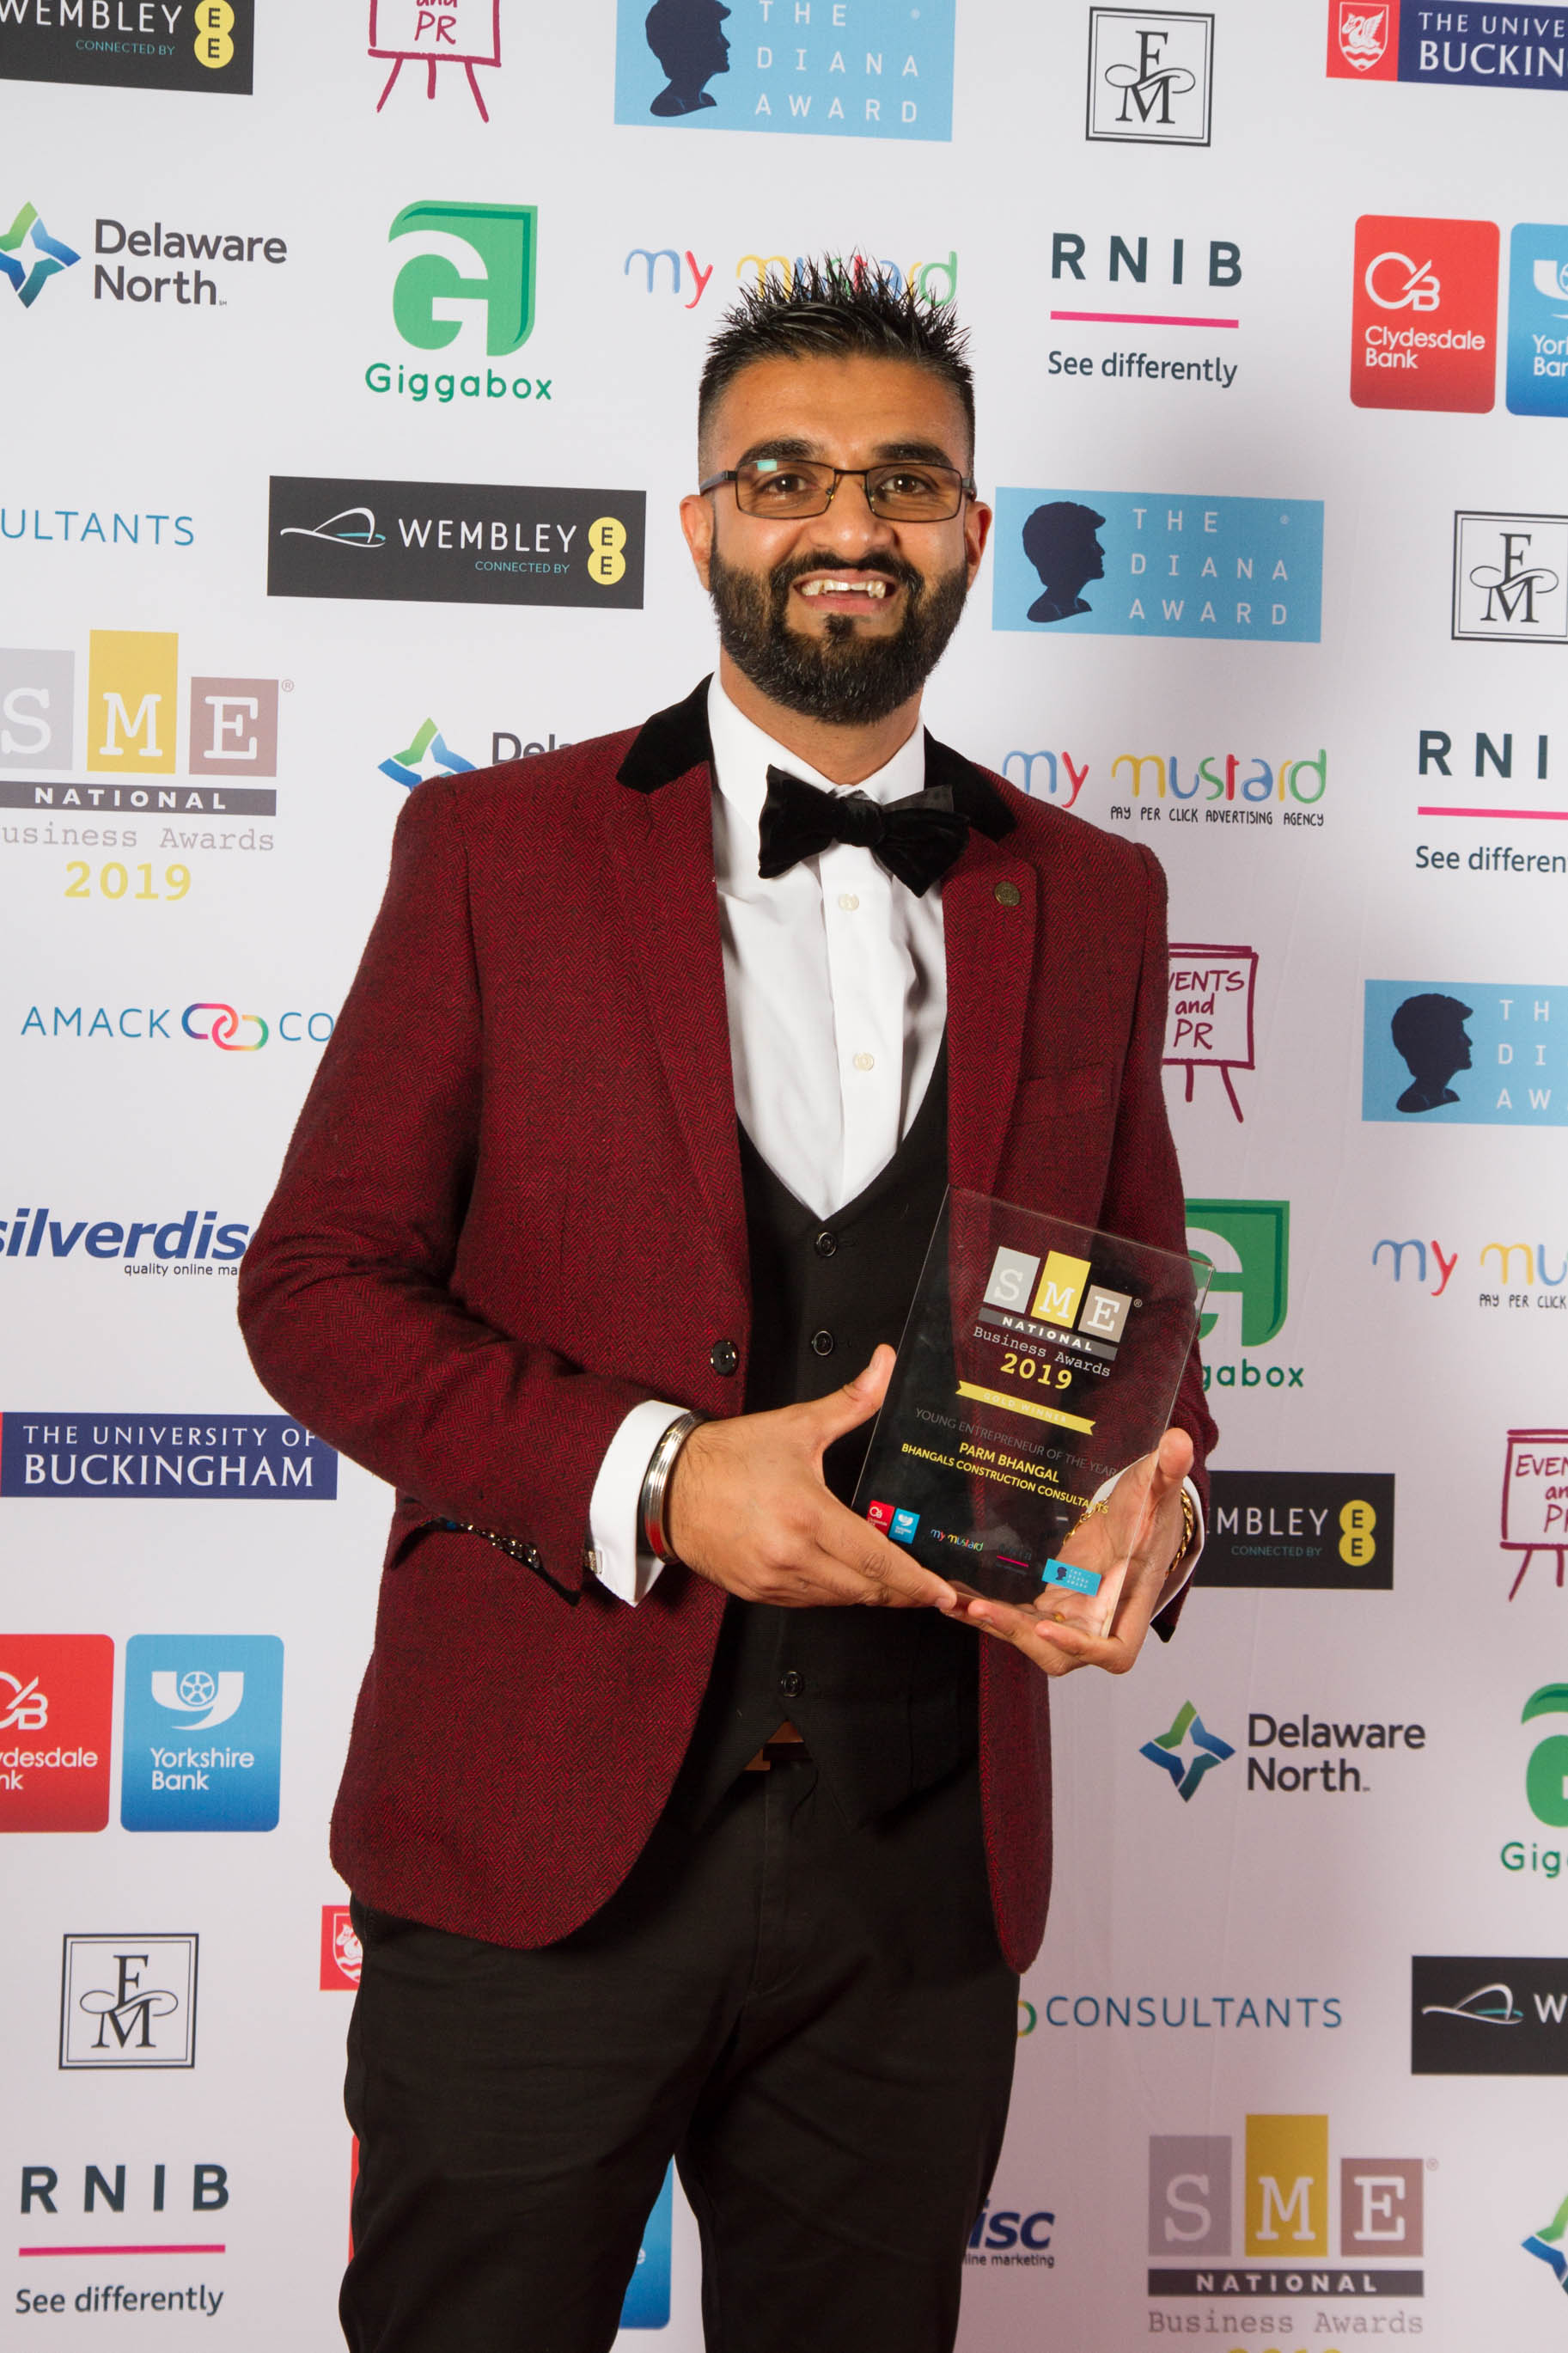 National award rounds off winning year for Northampton entrepreneur